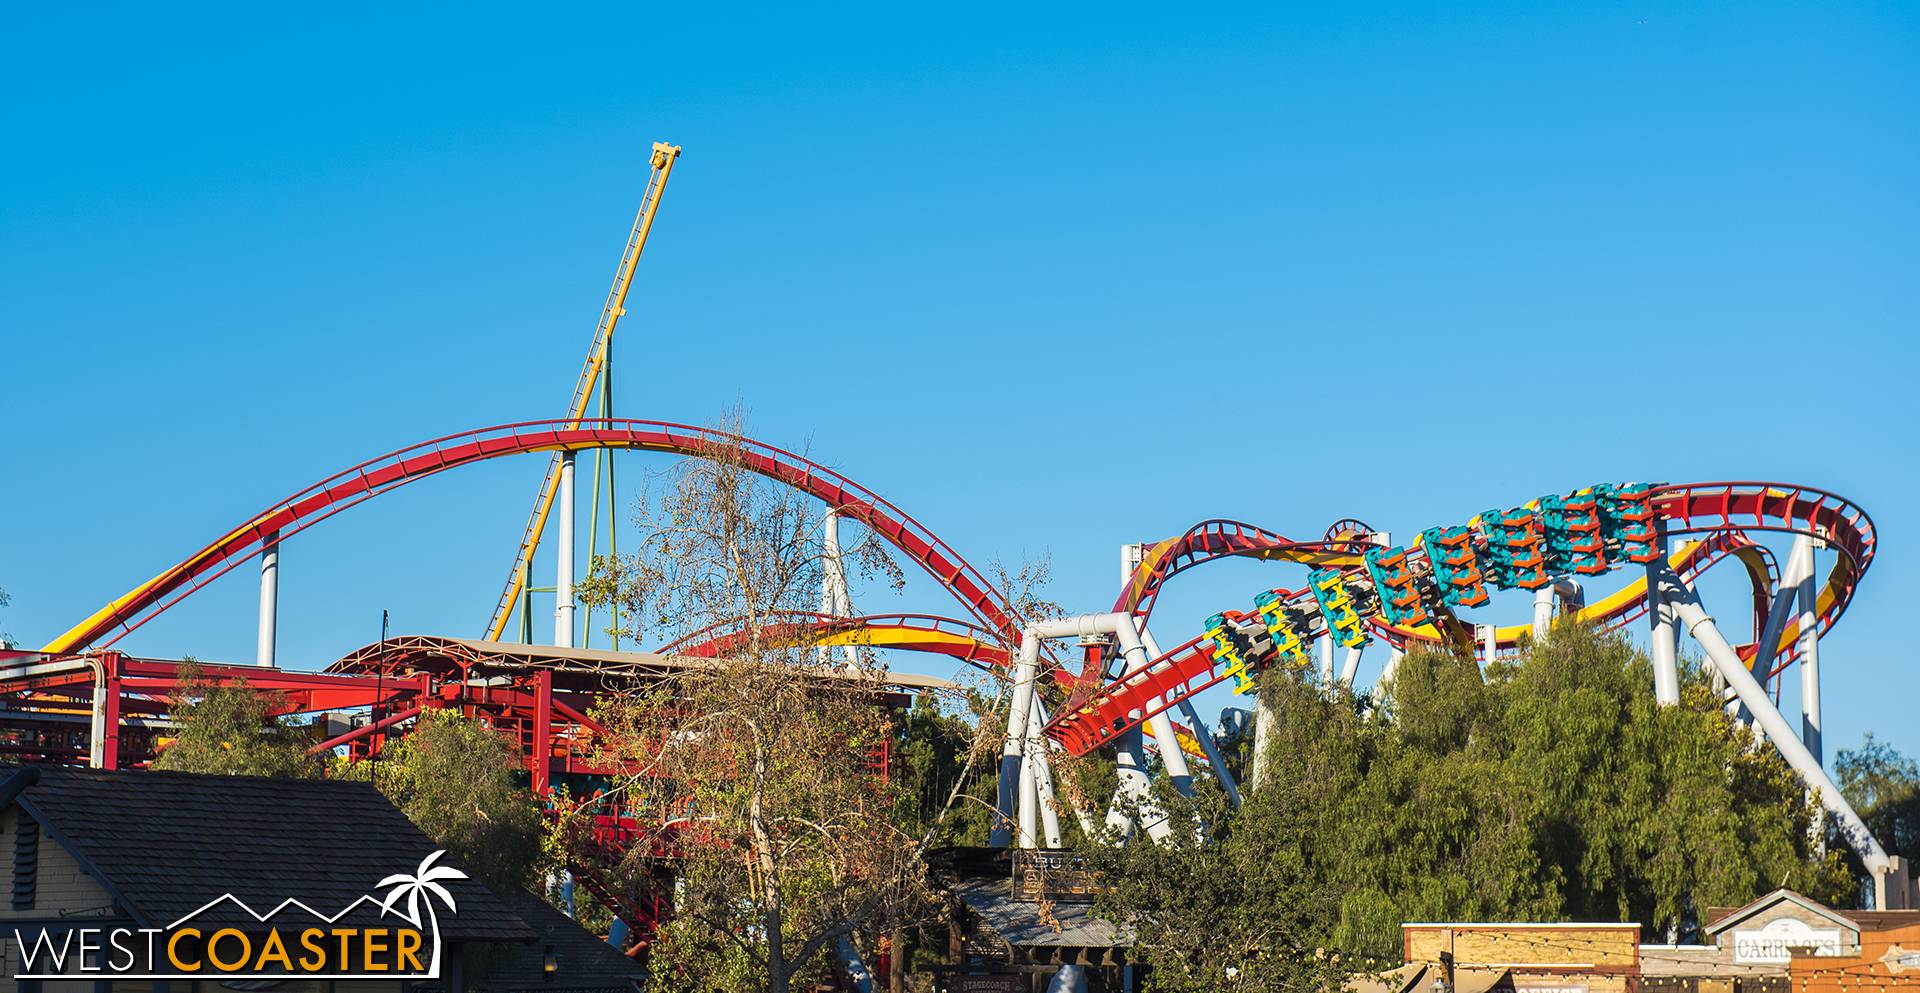 Silver Bullet is still zooming along, over 13 years after it opened.